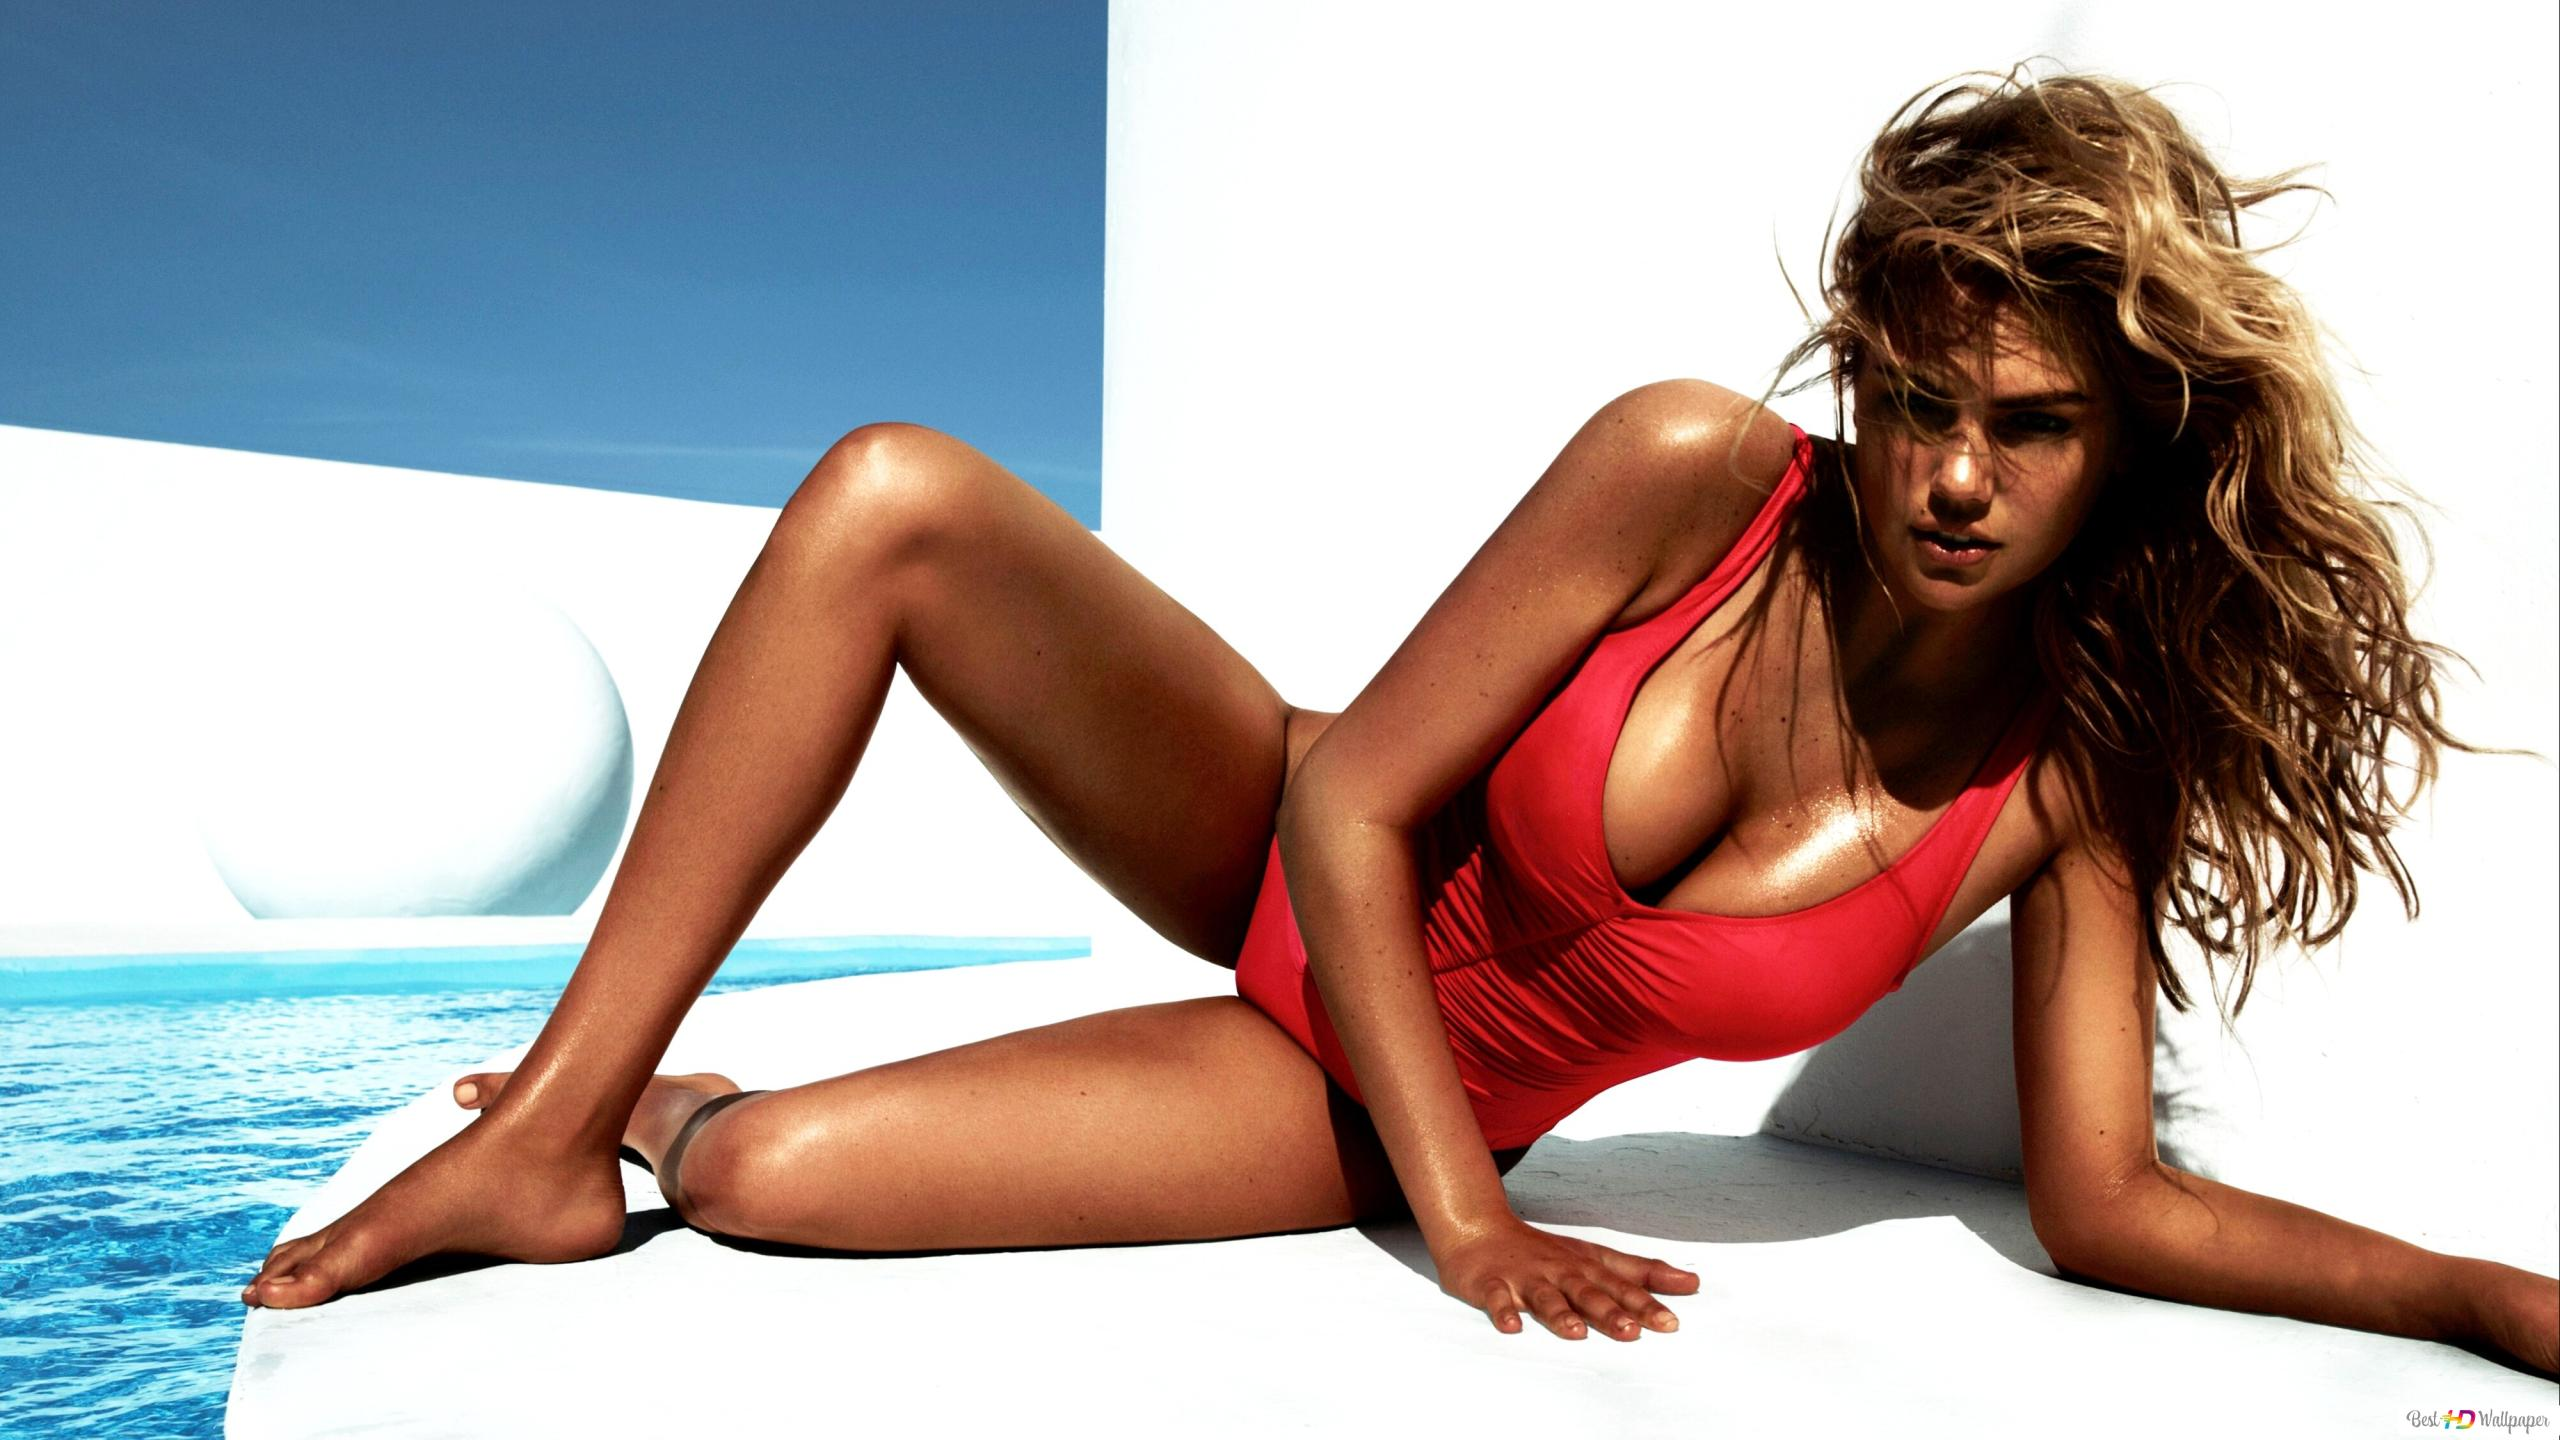 Tanned And Sexy Model Kate Upton Hd Wallpaper Download